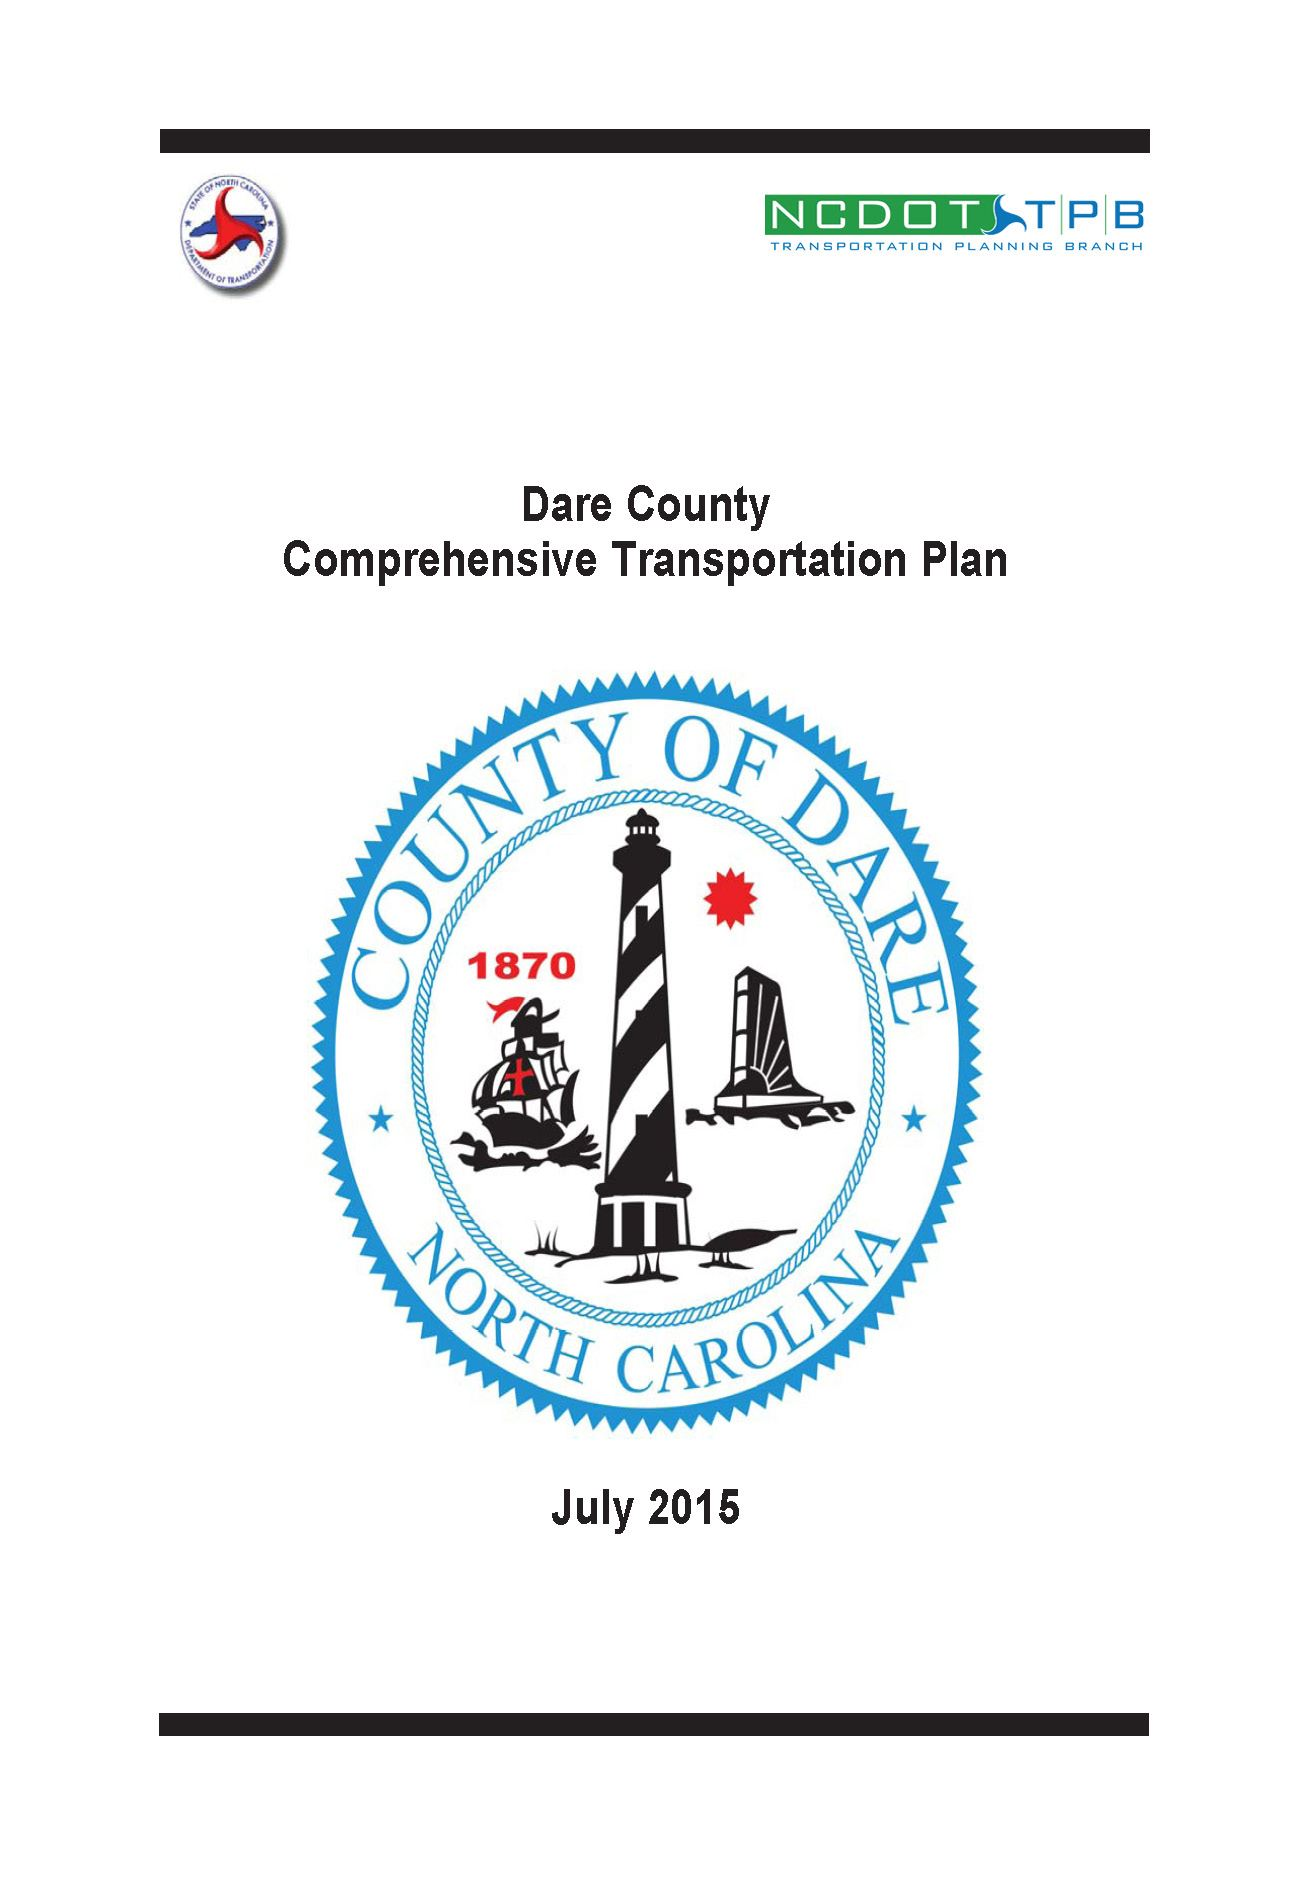 Dare County Comprehensive Transportation Plan